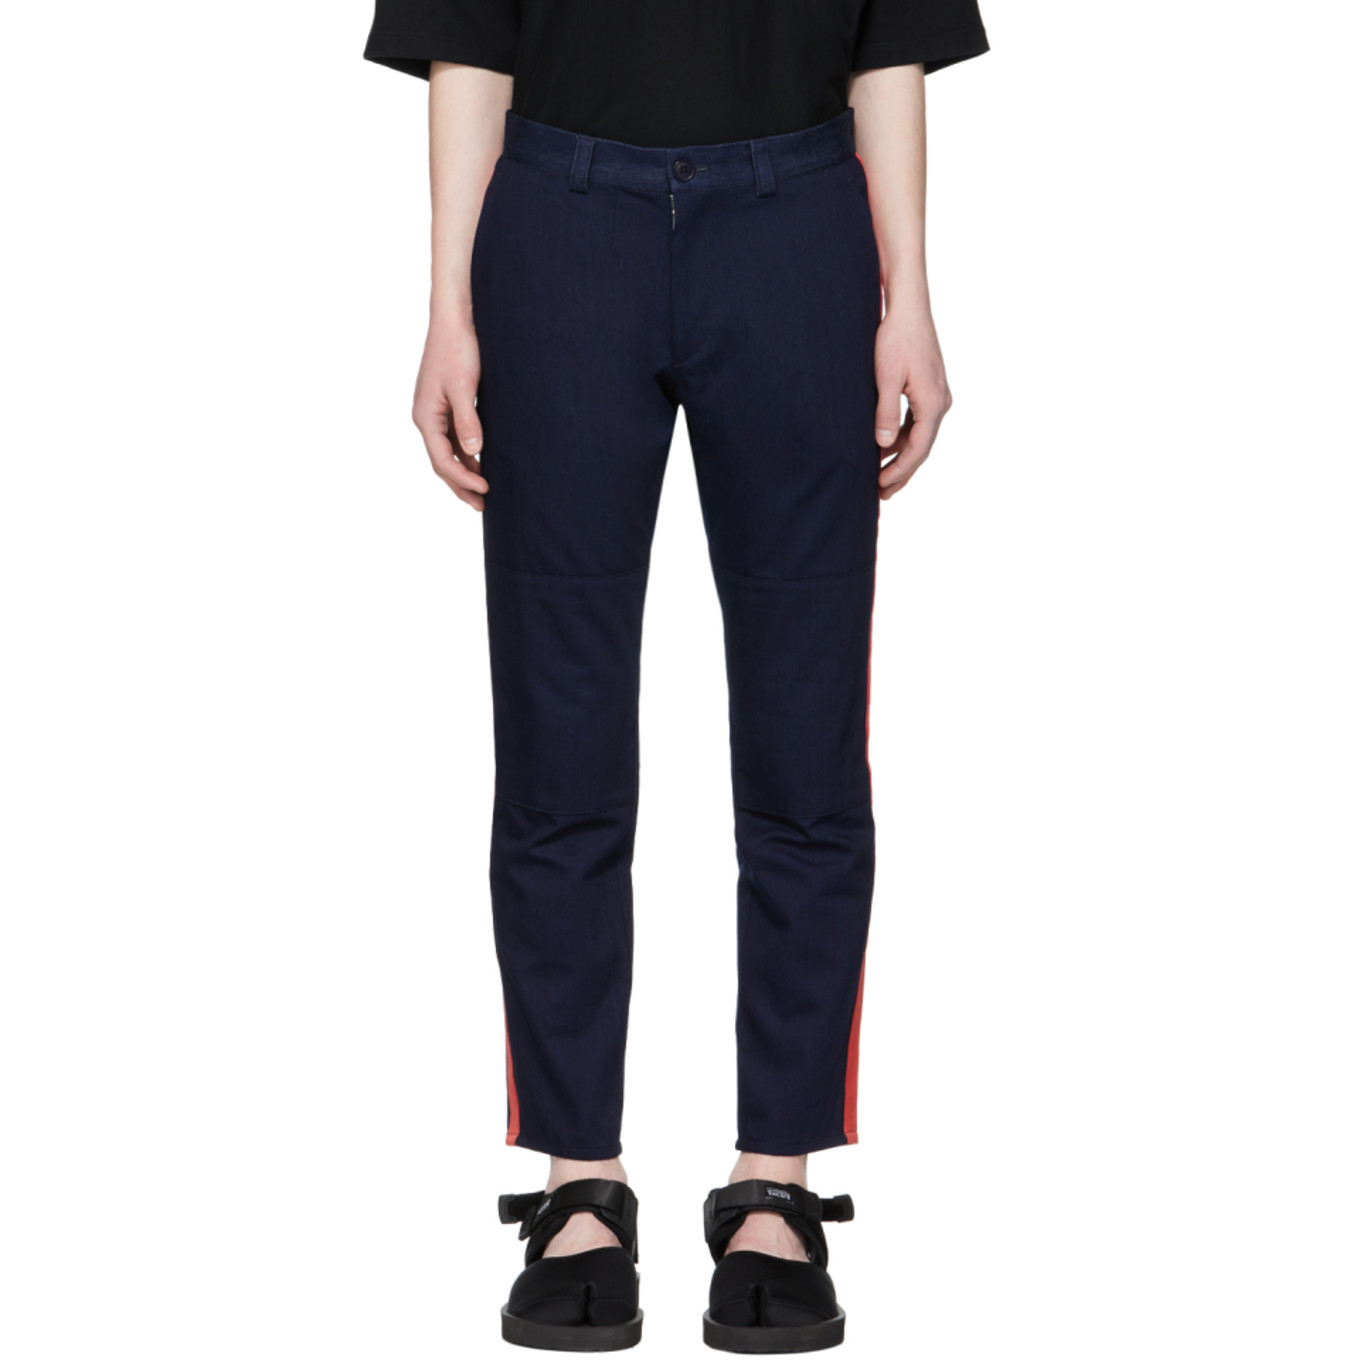 Indigo Twill Side Line Trousers by Blue Blue Japan